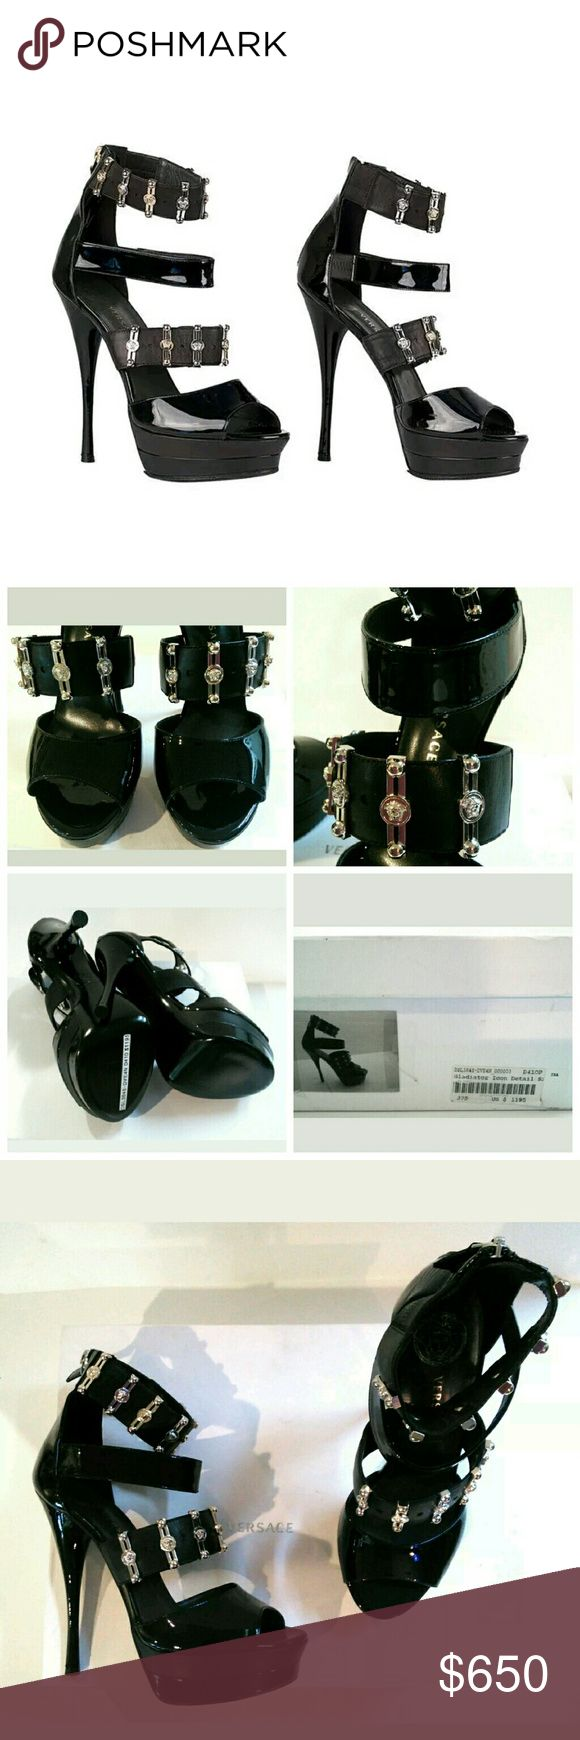 Price DROP👇 $1195+ NIB Versace Gladiator Heels Amazing ICON double platform heel sandals in black patent leather exclusively by Versace.  Signature silver + gold medallion hardware.  Original box + care card included!  Size 37.5 or 7.5/7 US!  Additional photos can be provided.  💵Extra 15% off HOLIDAY SALE👠💵 No✋trades Versace Shoes Heels